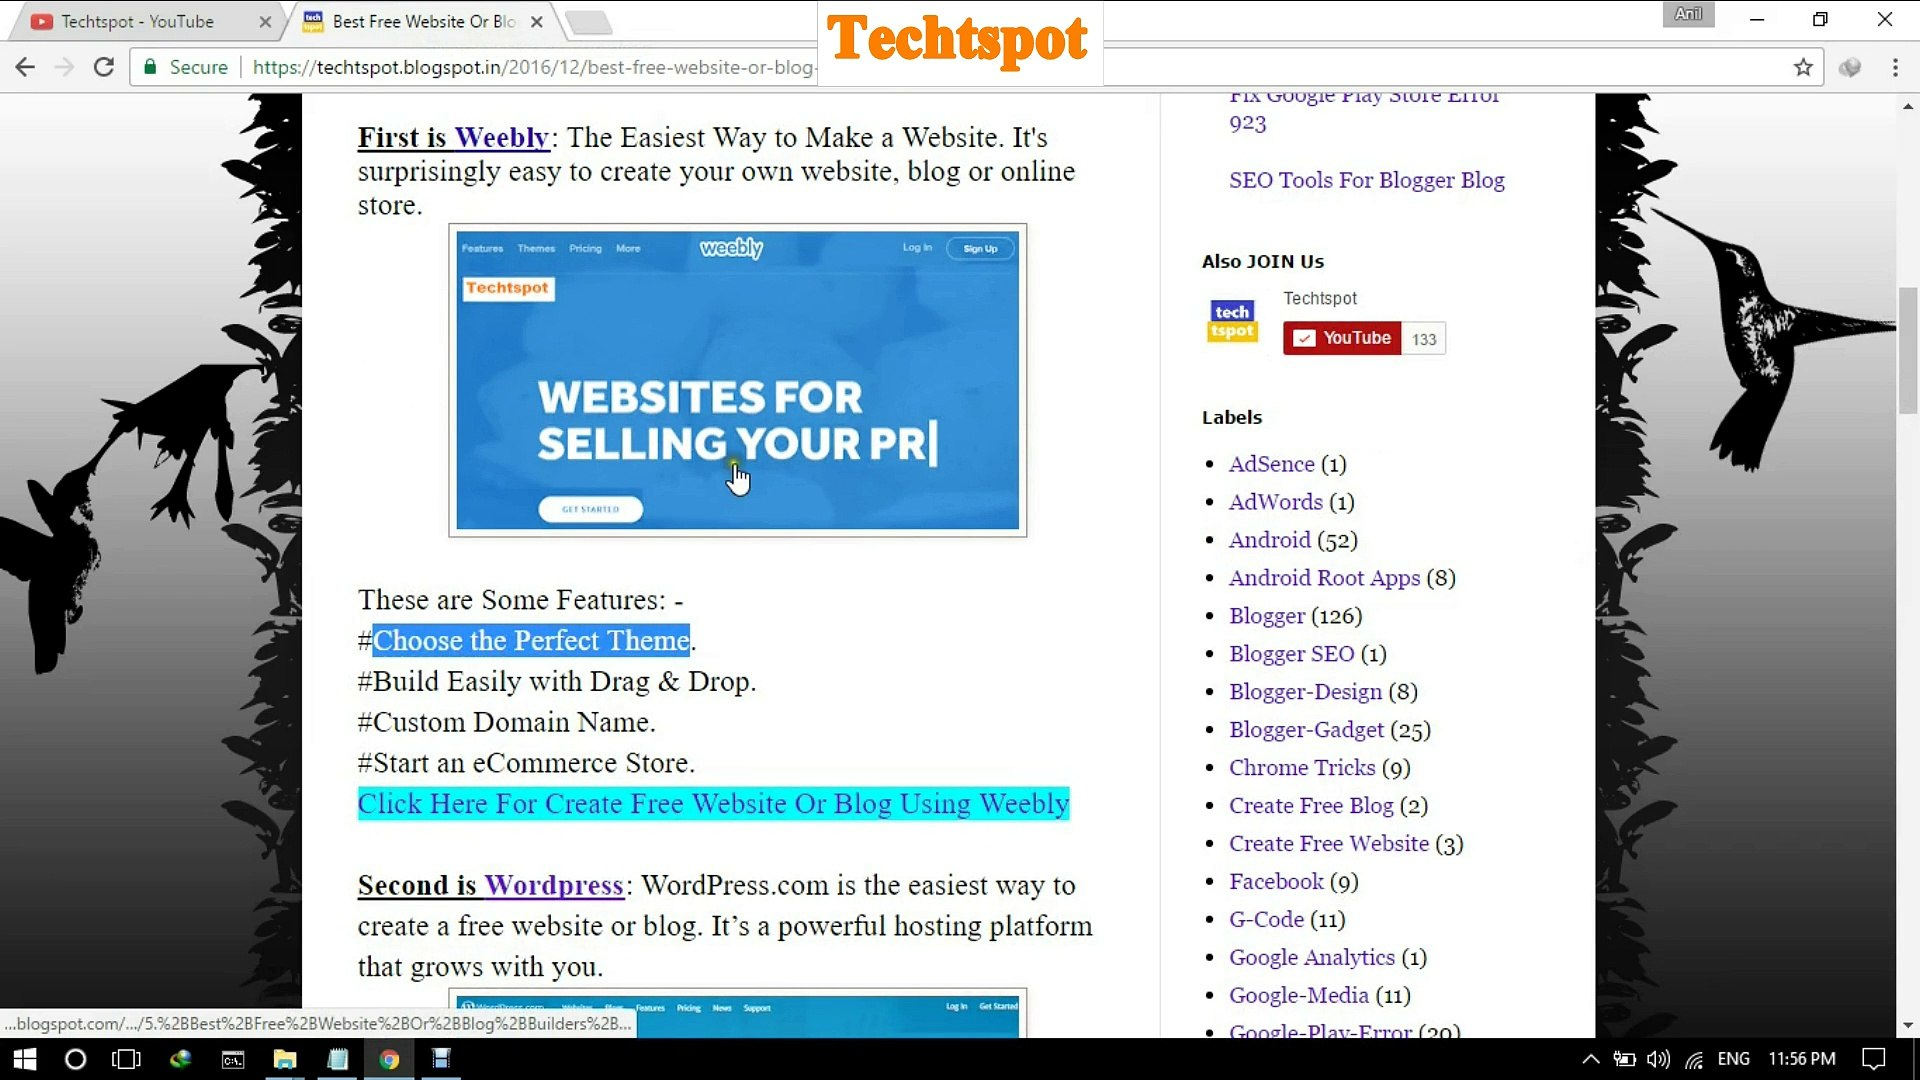 How To Make A Free Website Using Weebly - Hindi Urdu